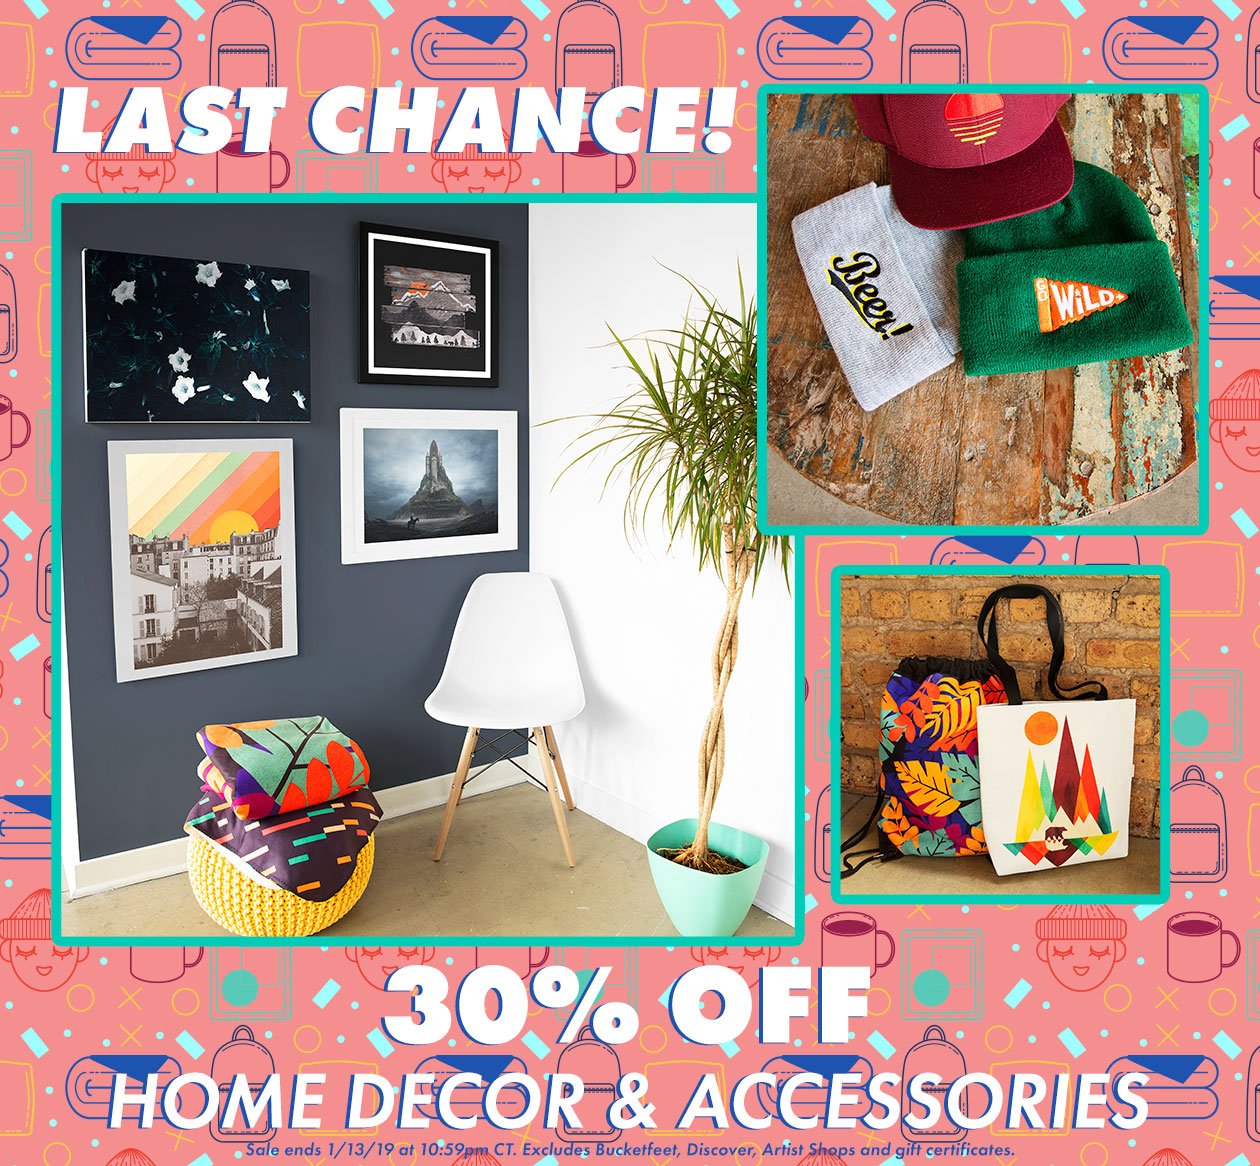 Last Chance for 30% off Home Decor and Accessories!